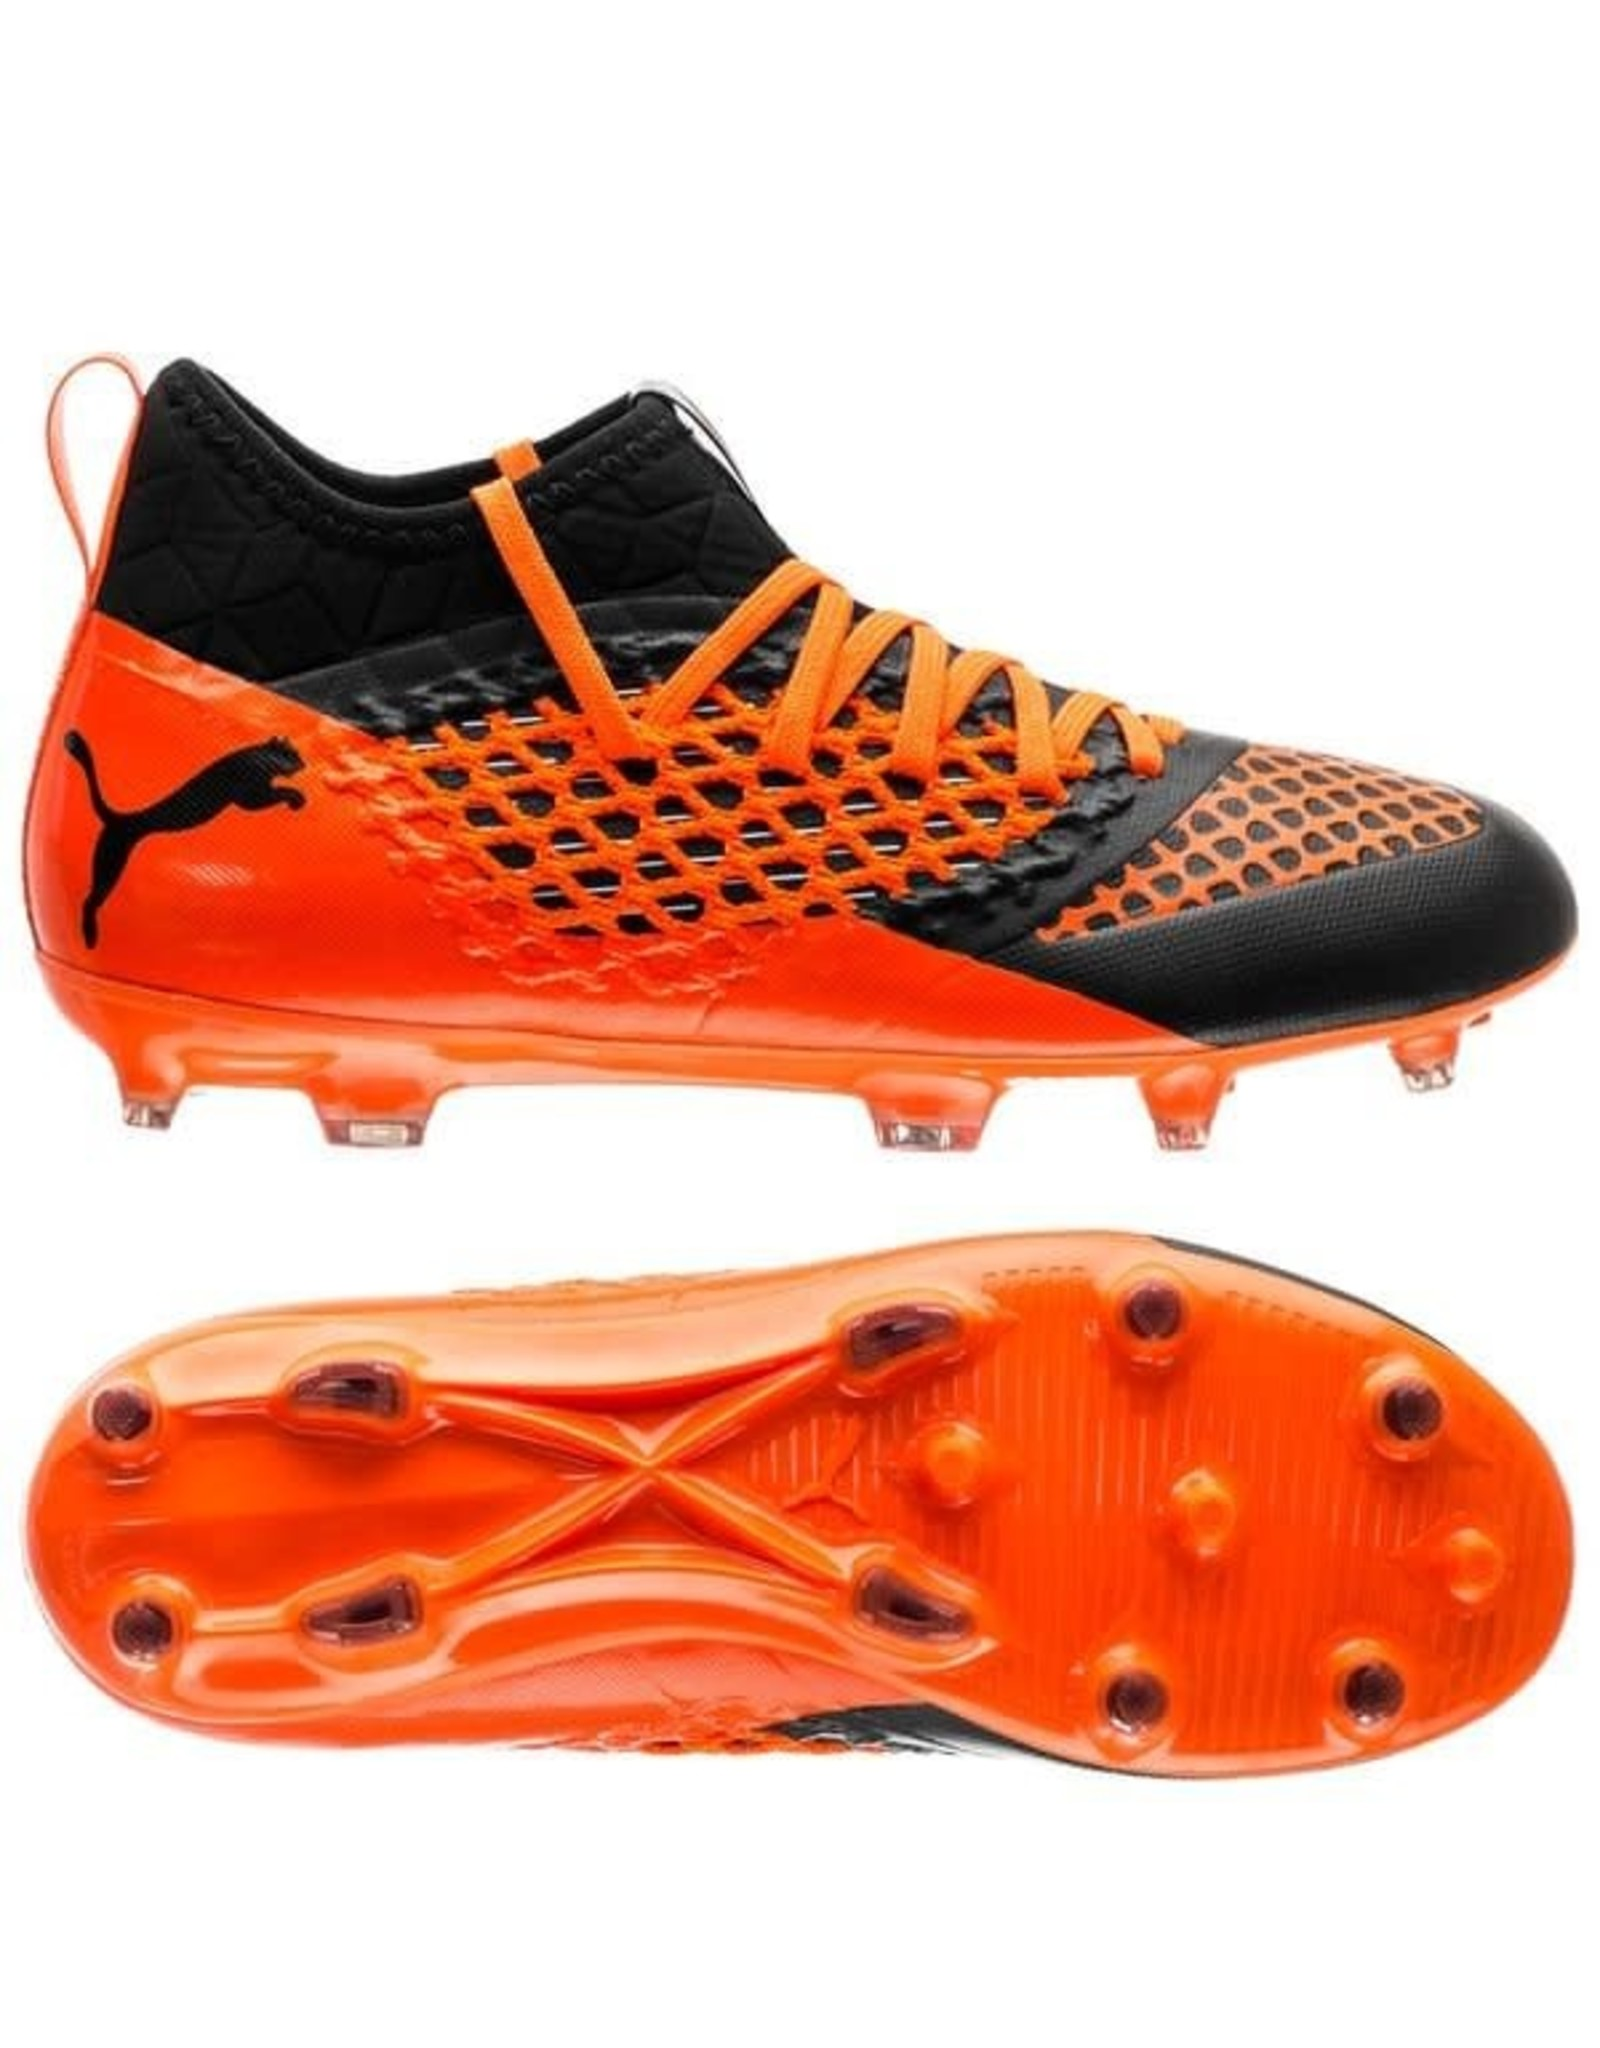 Puma Puma FUTURE 2.3 NETFIT FG/AG Cleats (Puma Black/Shocking Orange)